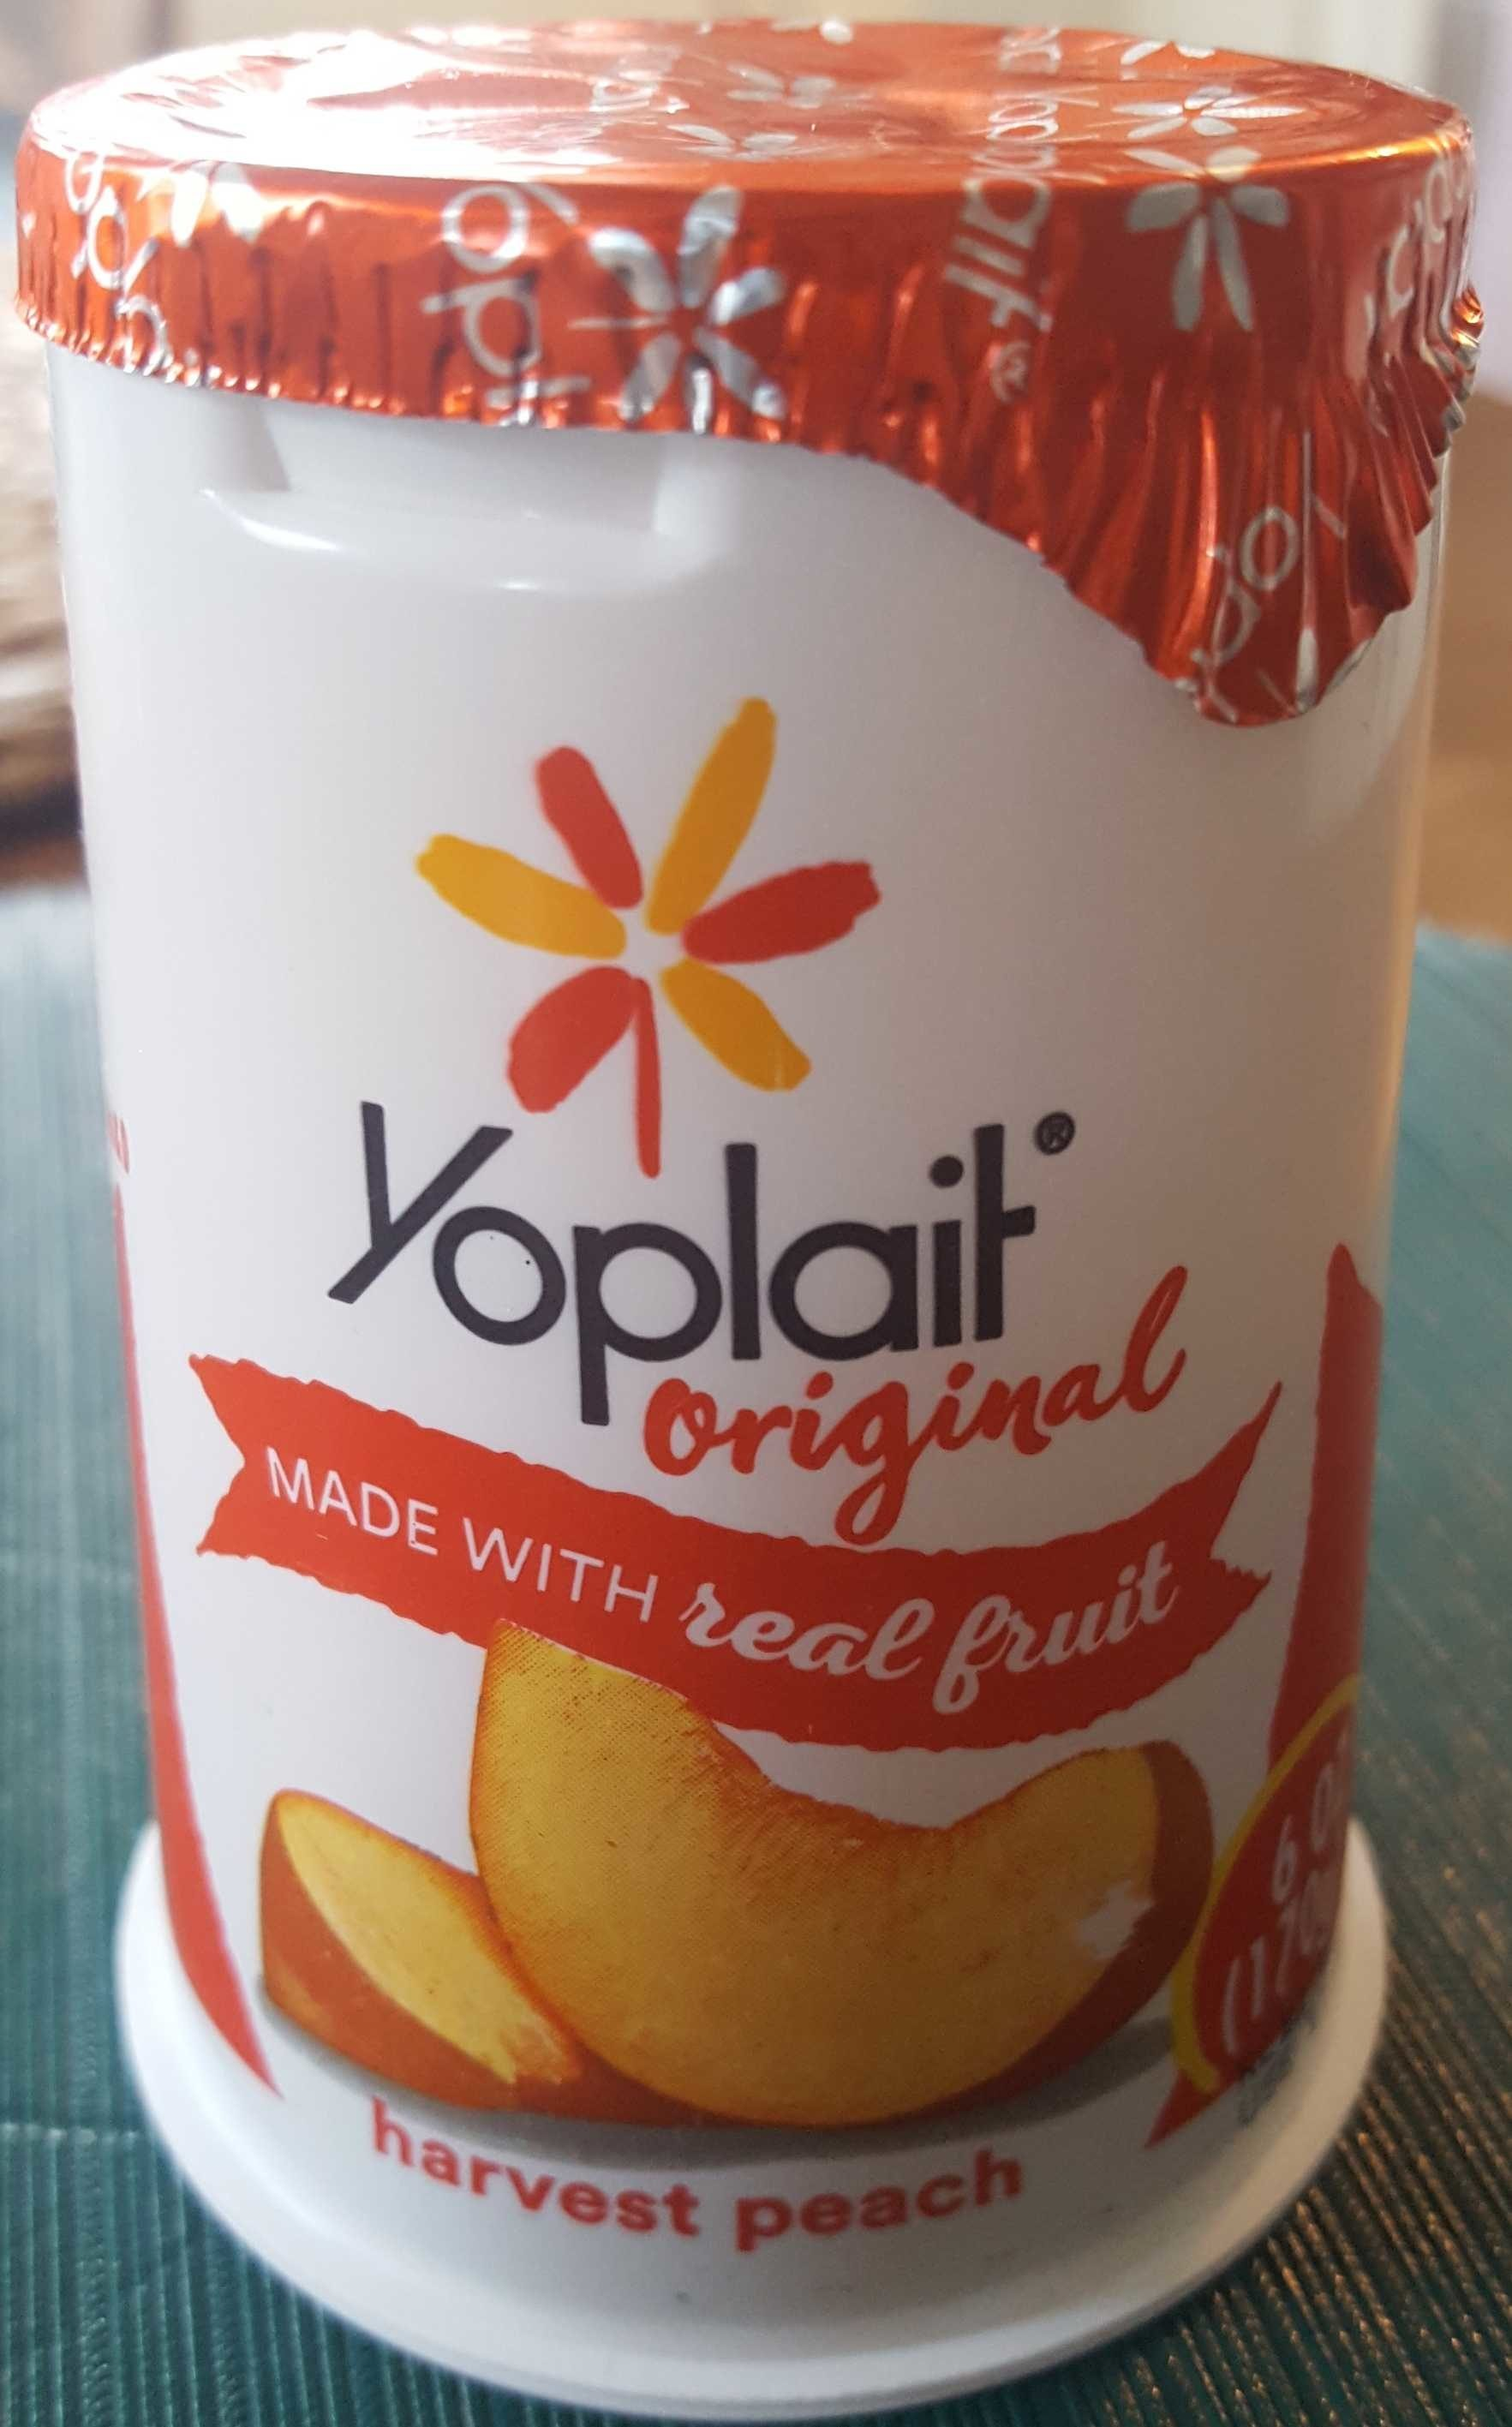 Yoplait Original Low Fat Yogurt Harvest Peach - Product